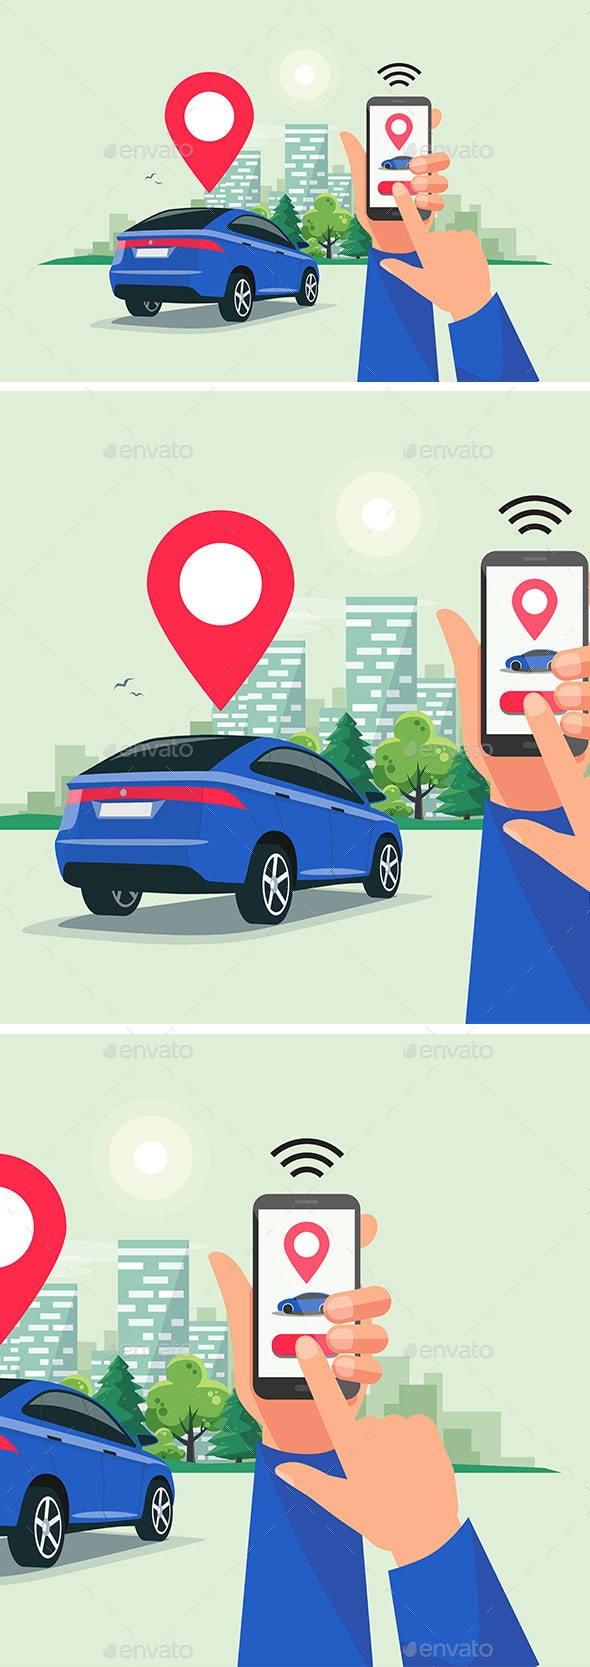 Connected Car Sharing Service Remote Controlled Via Smartphone App - Industries Business